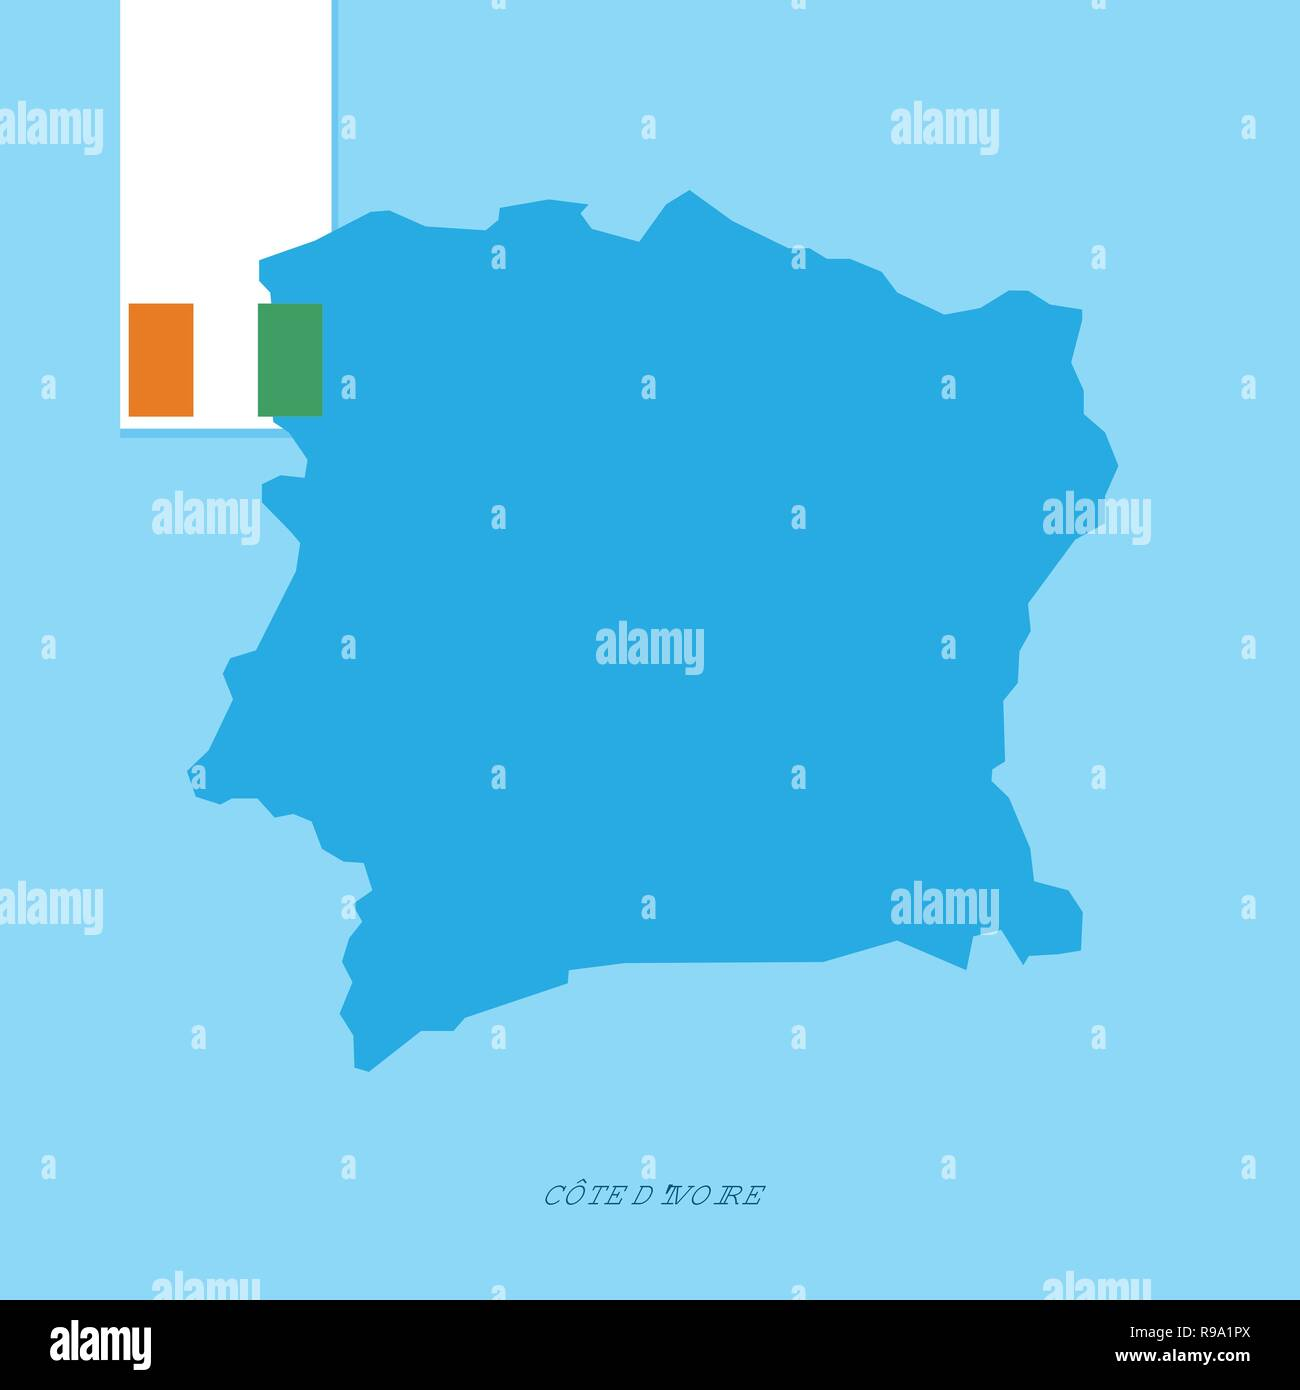 Cote d Ivoire / Ivory Coast Country Map with Flag over Blue background - Stock Vector